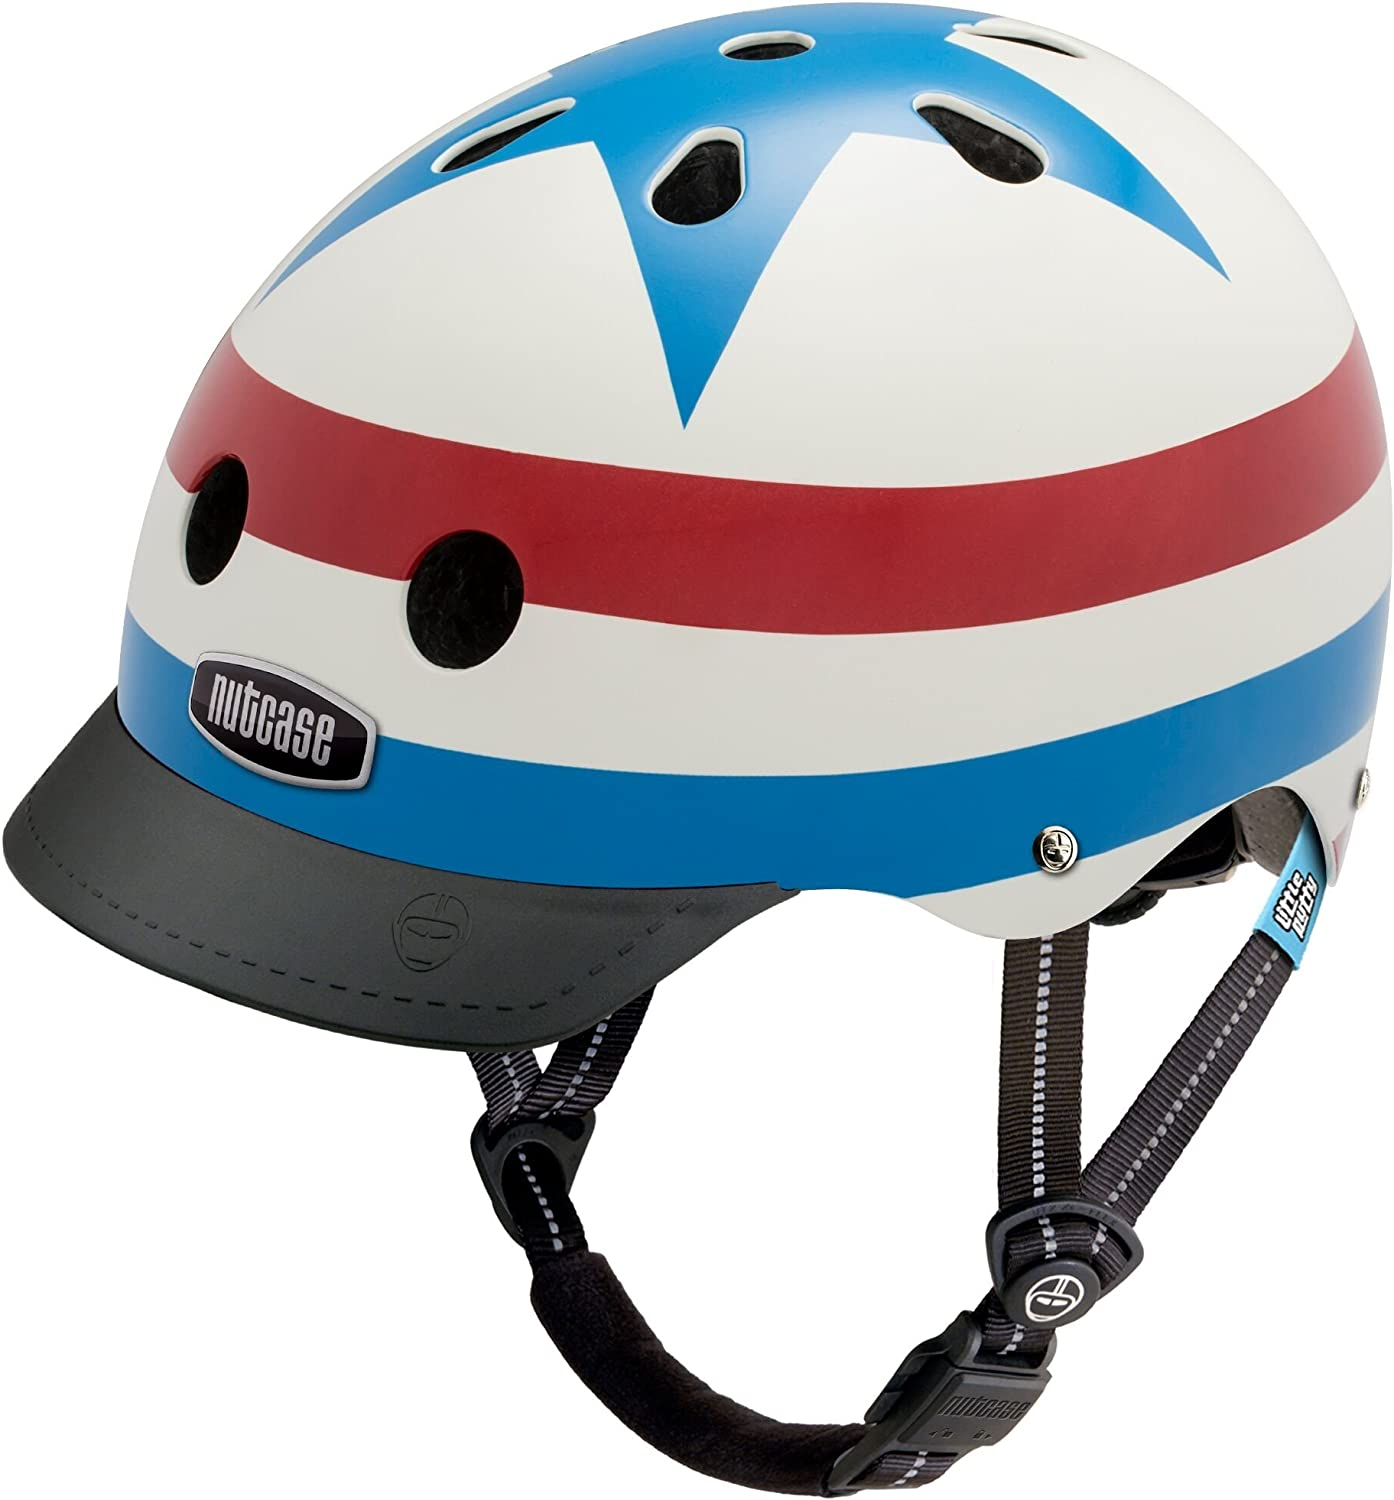 Lazer BOB Baby on Board Helmet